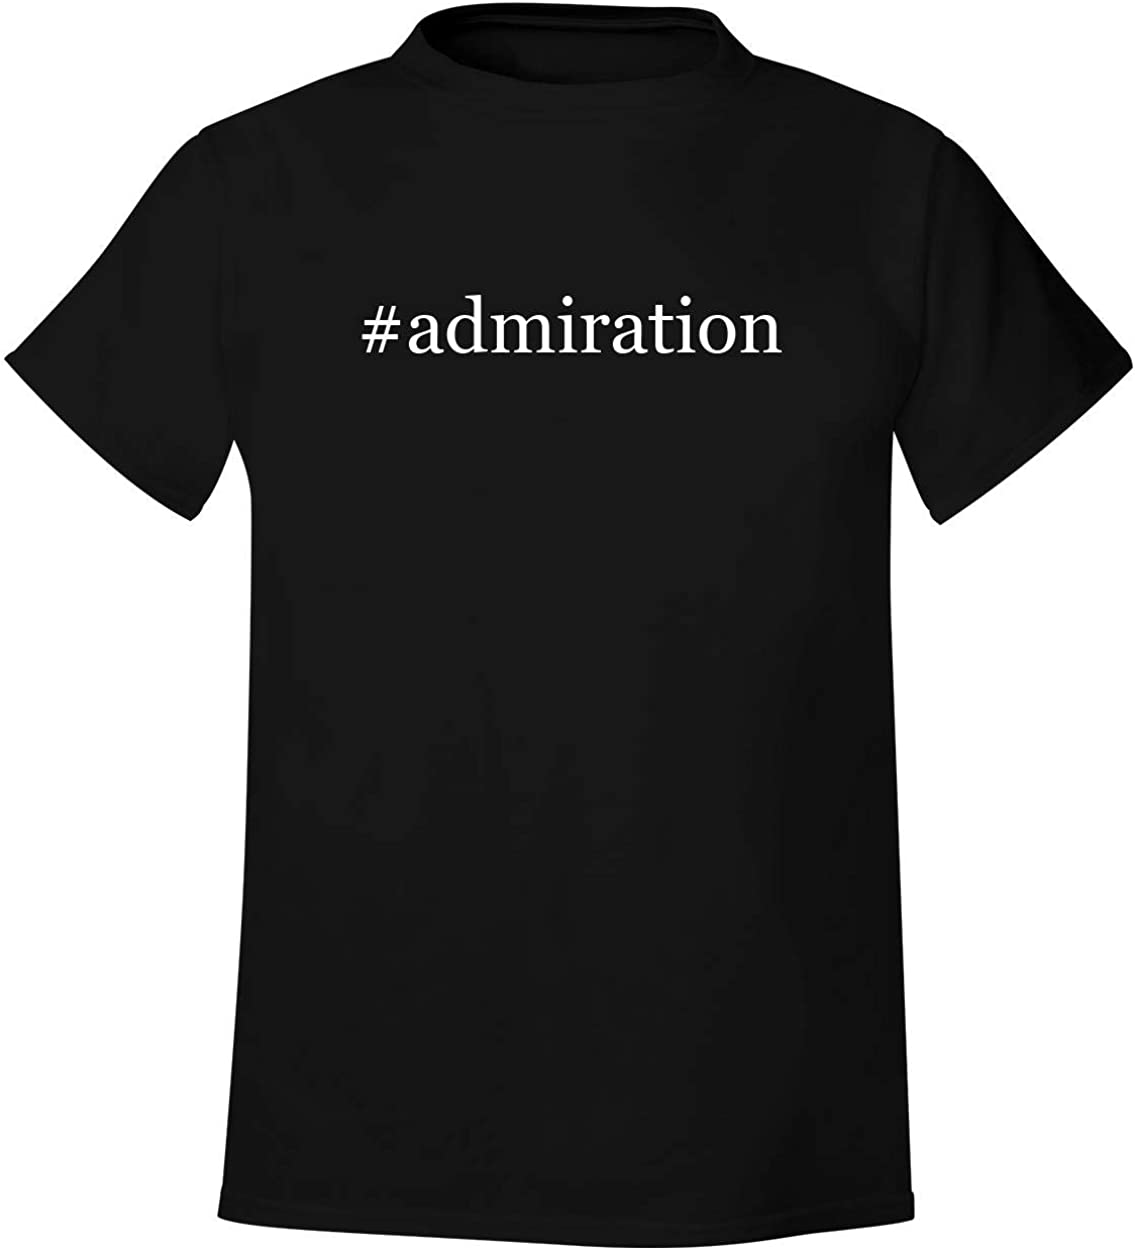 #admiration - Men's Hashtag Soft & Comfortable T-Shirt